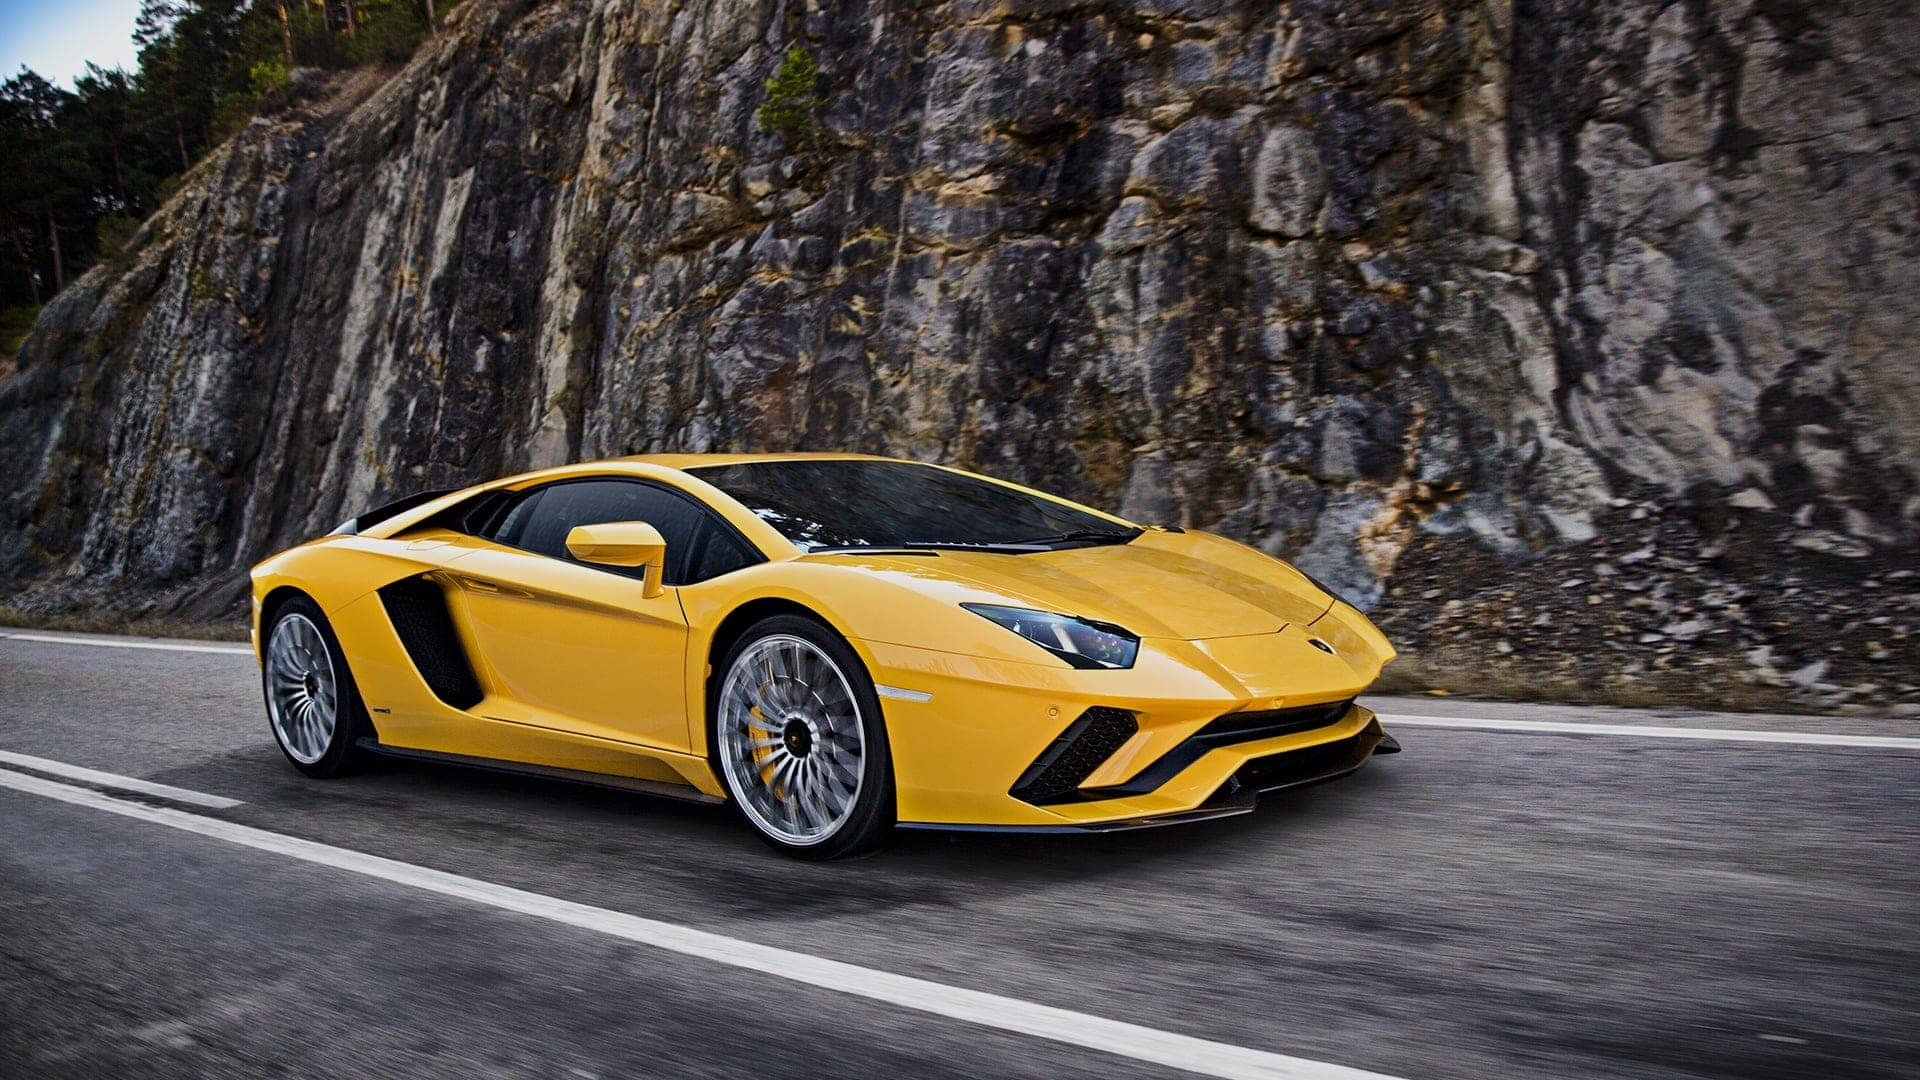 Lamborghini S V12 Comes In The Form Of Its All Wheel Drive Aventador With A 6 5l Engine Producing 730 Horse At 8 400 Rpm Being One Lightest